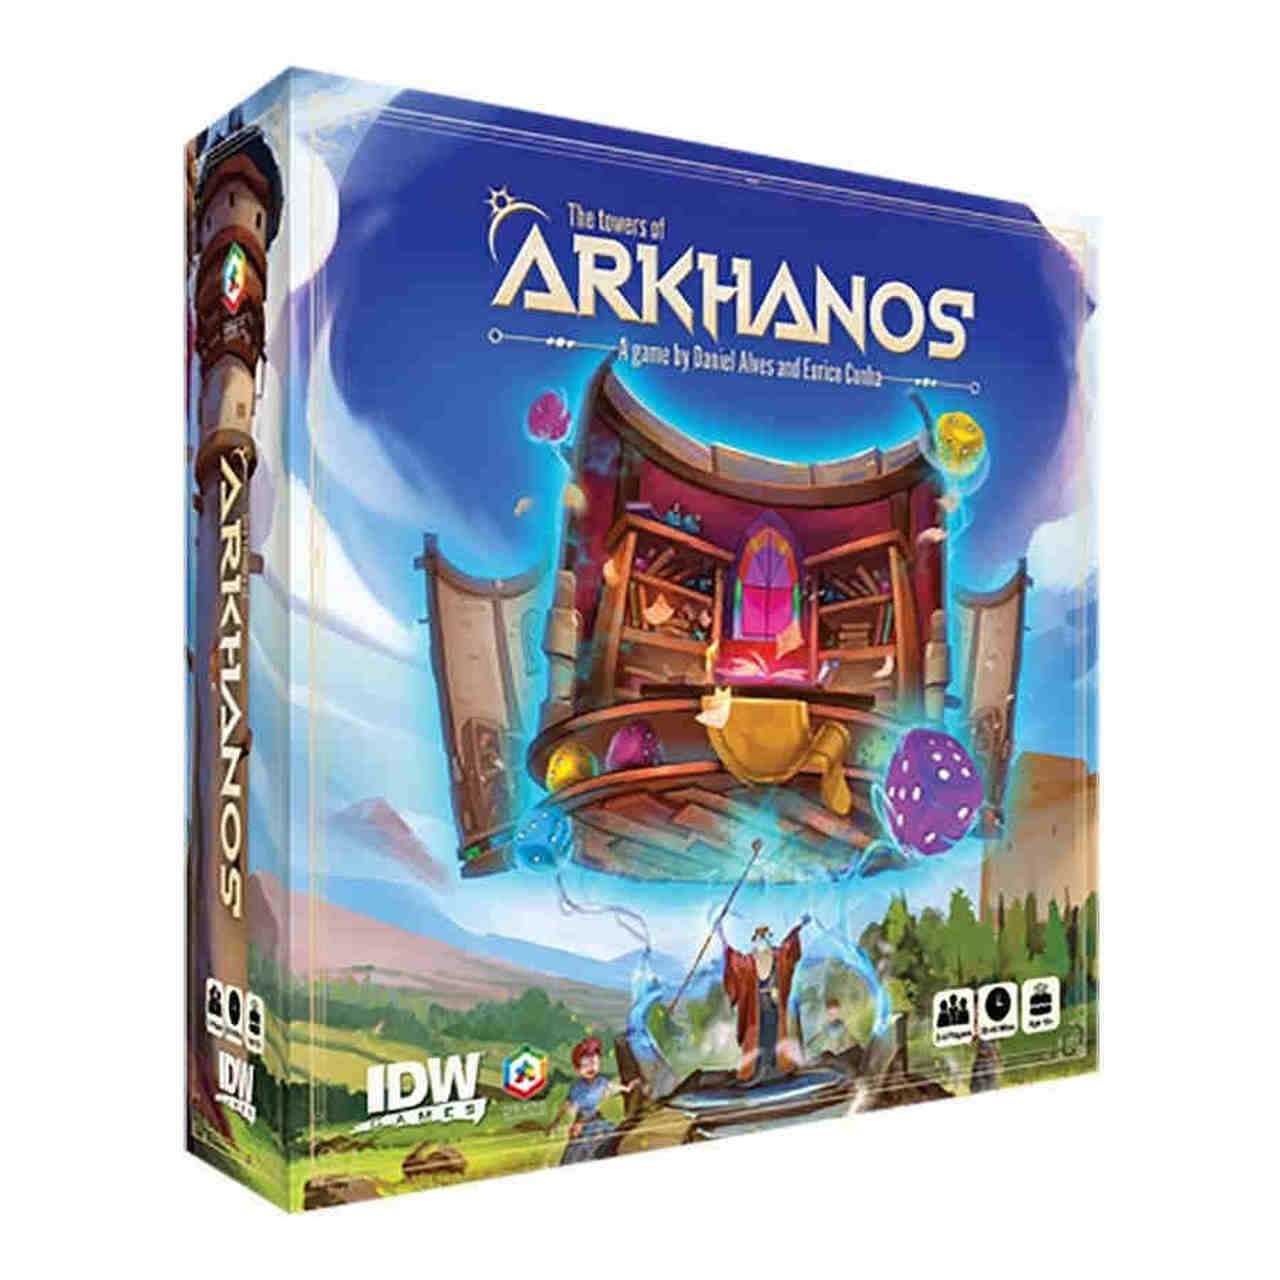 Towers of Arkhanos | Gamers Grove